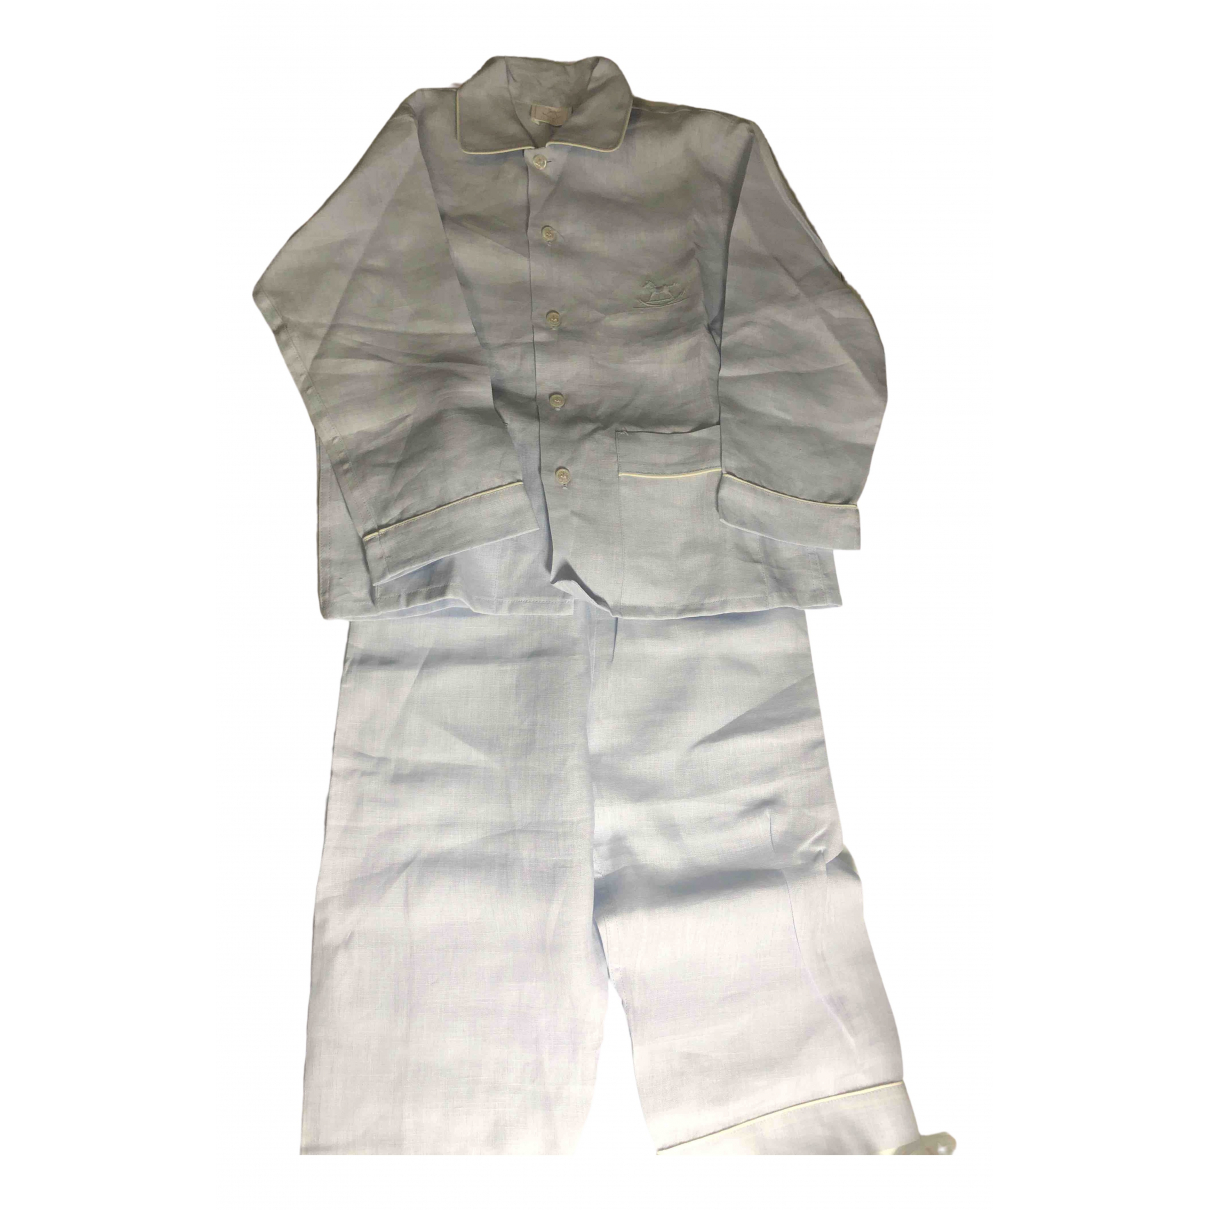 Hermès \N Blue Linen Outfits for Kids 2 years - until 34 inches UK